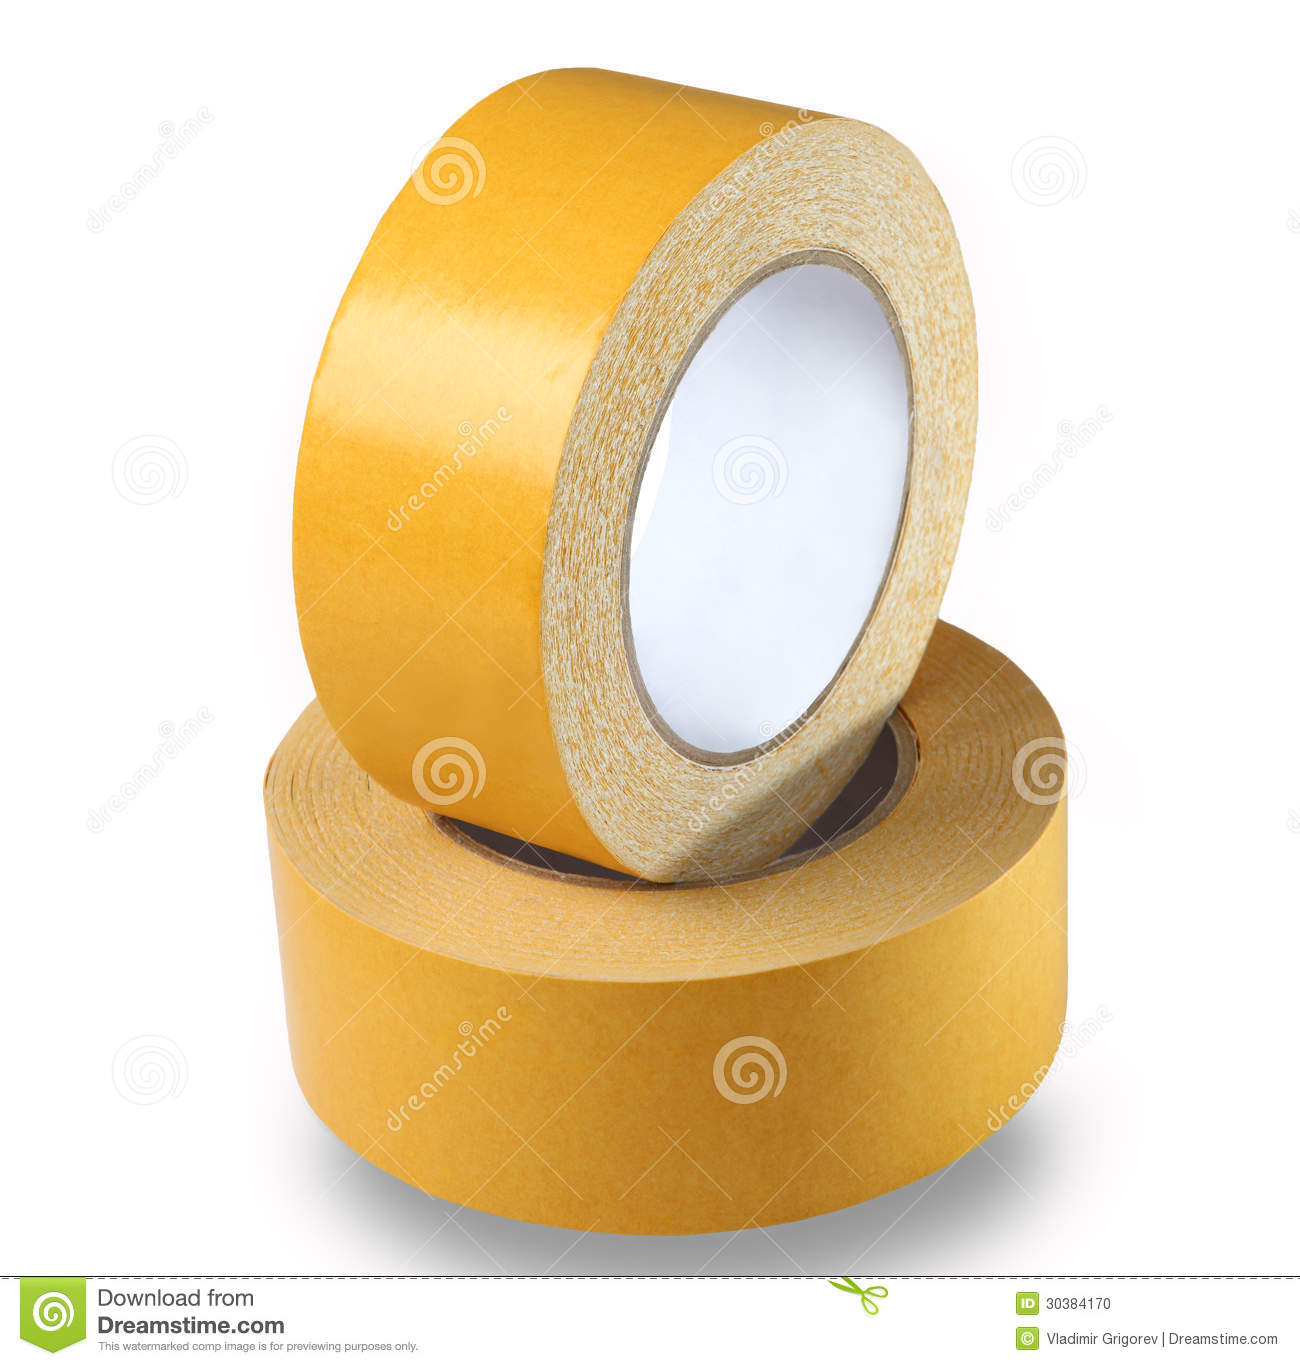 Two rolls of yellow double-sided tape on a white background, iso